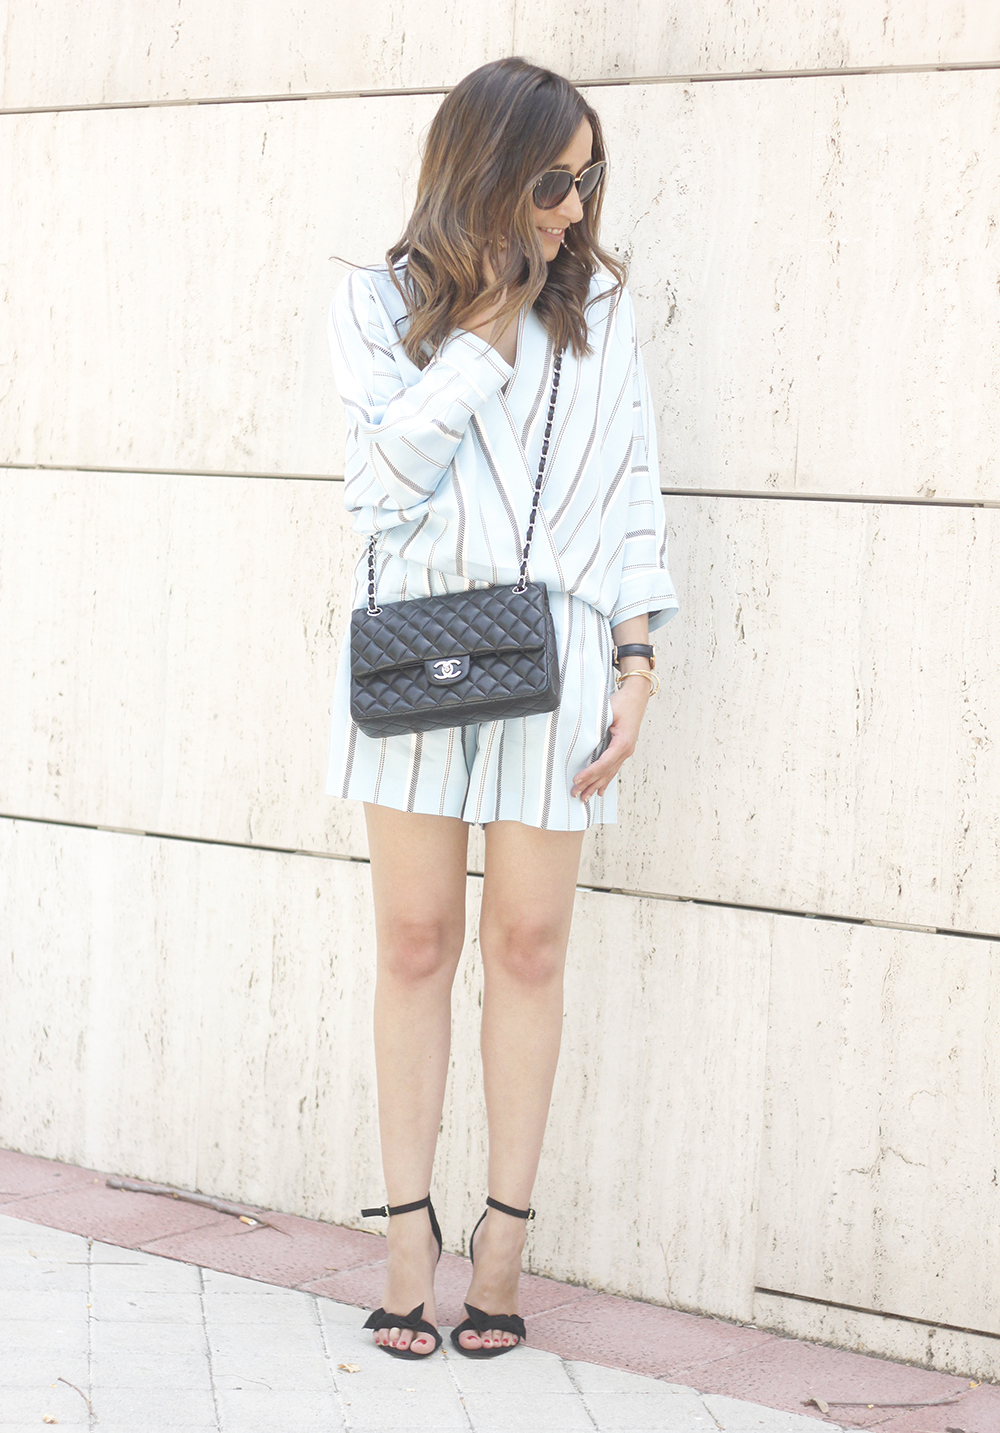 Maje Jumpsuit with stripes black heels chanel bag summer outfit street style fashion08